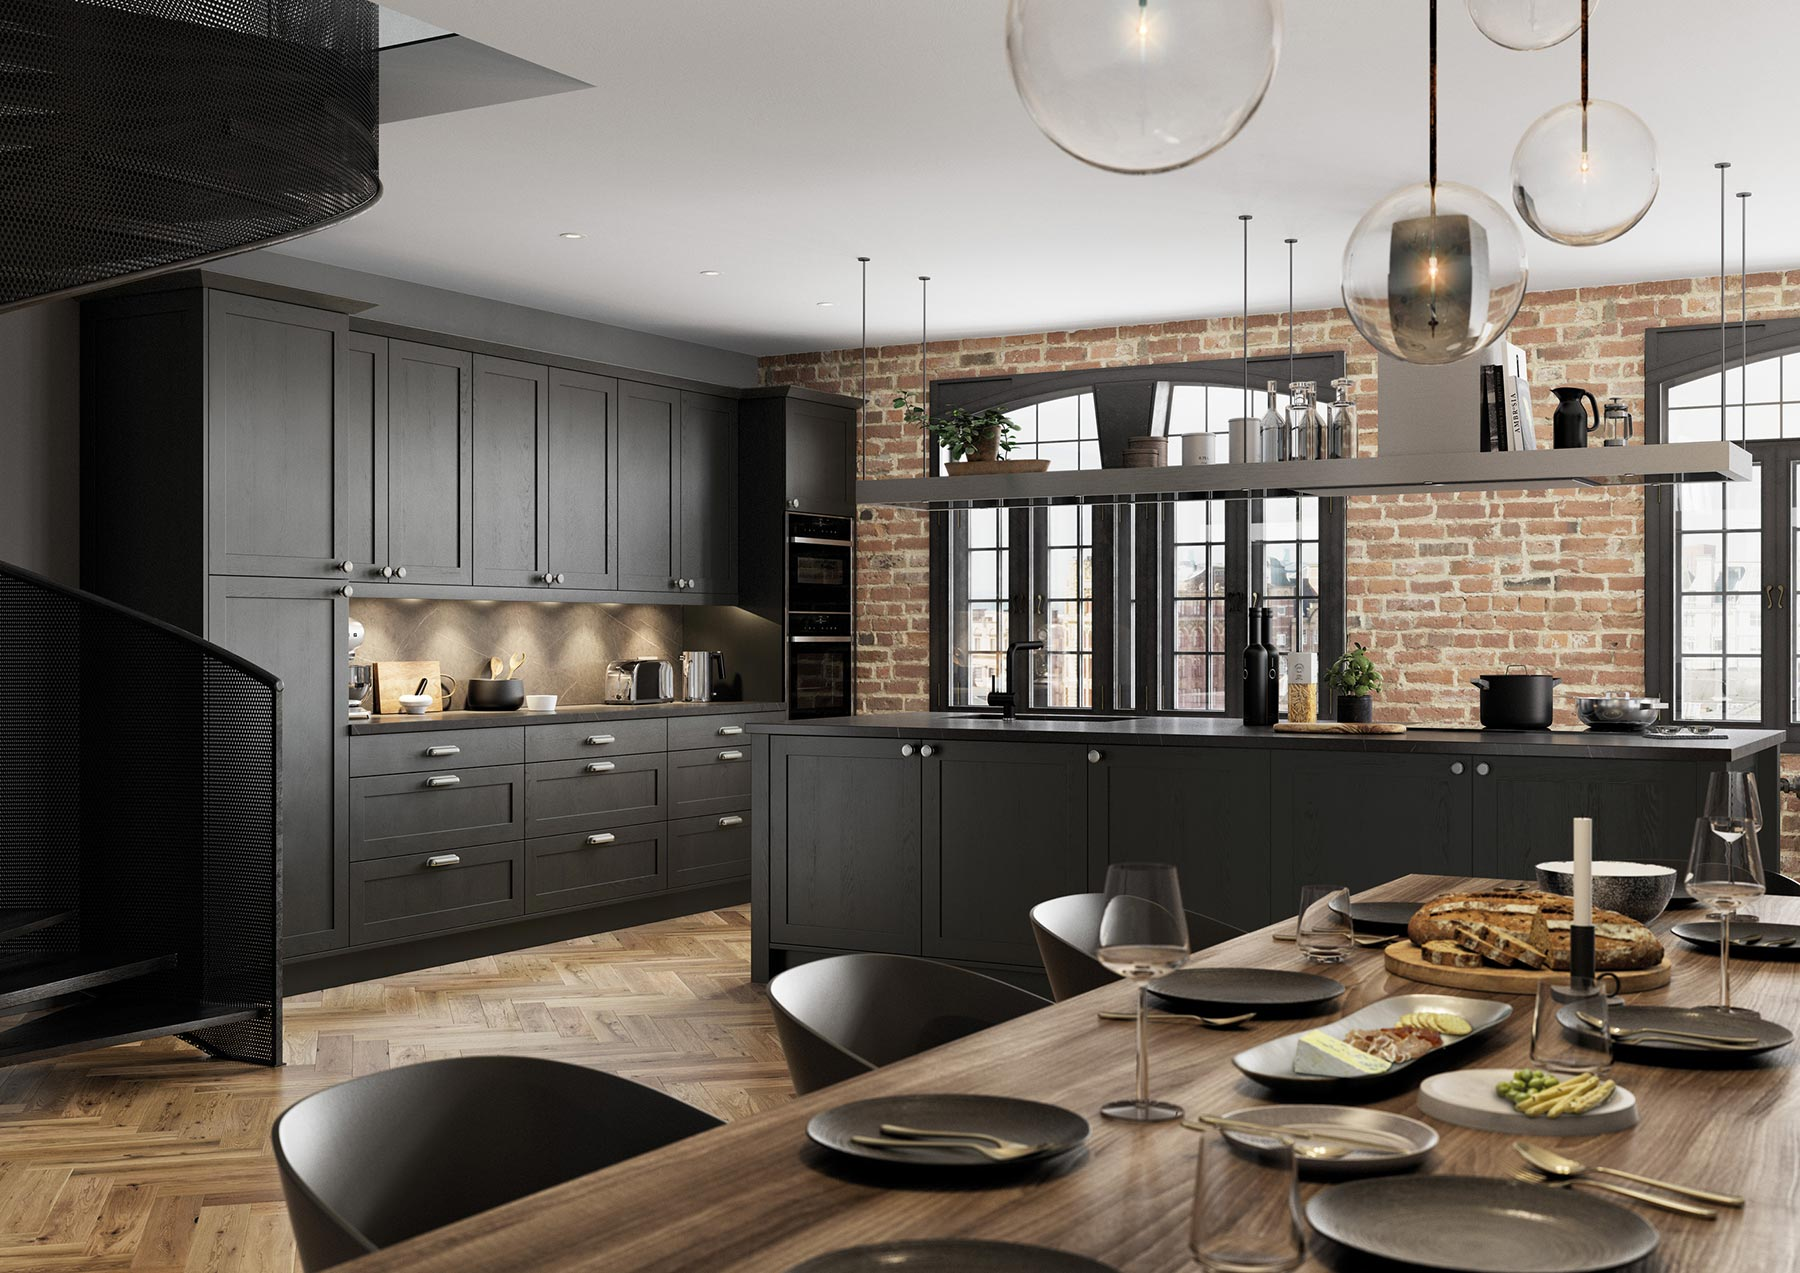 Contemporary Skinny Shaker Kitchen Painted Graphite Grey View From Dining Area